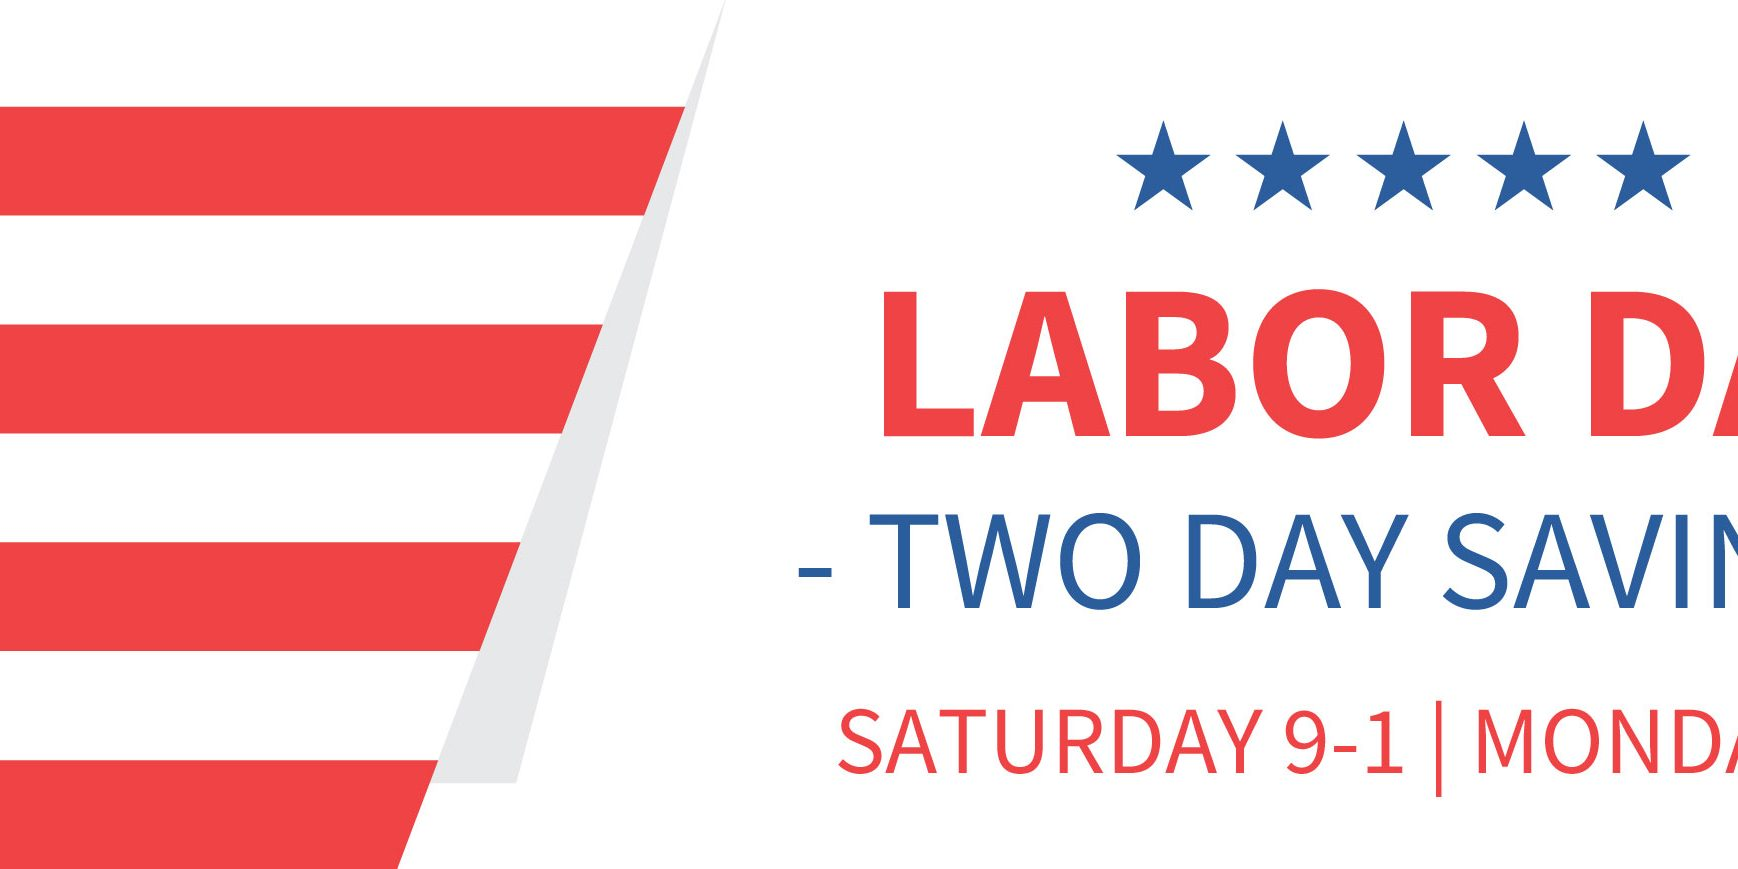 Labor Day is an annual workers' holiday on the first Monday in September. The first Labor Day was organized by the Central Labor Union of New York in Things to do for Labor Day